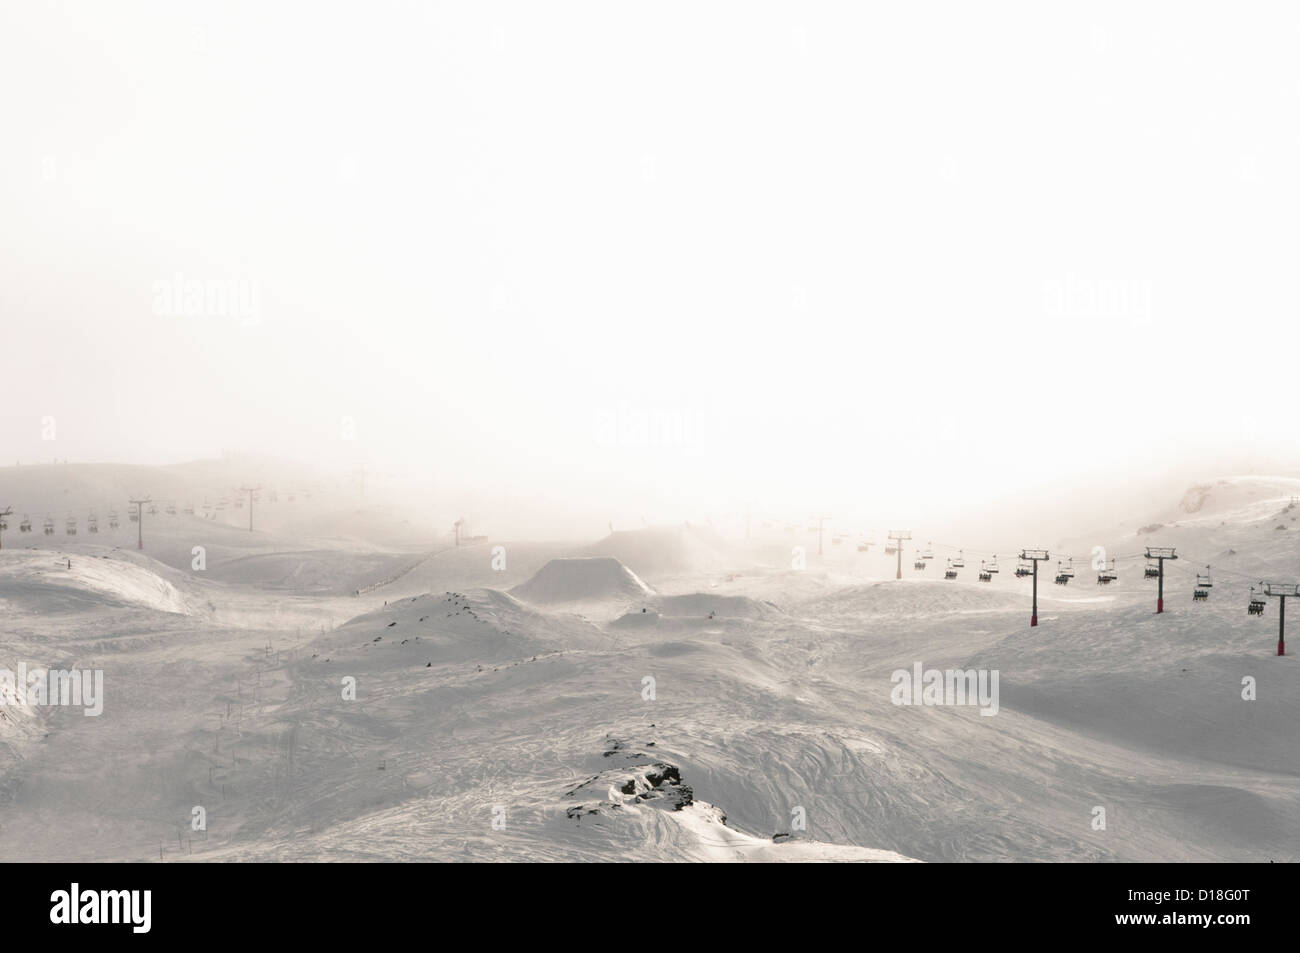 Ski lift in snowy landscape - Stock Image